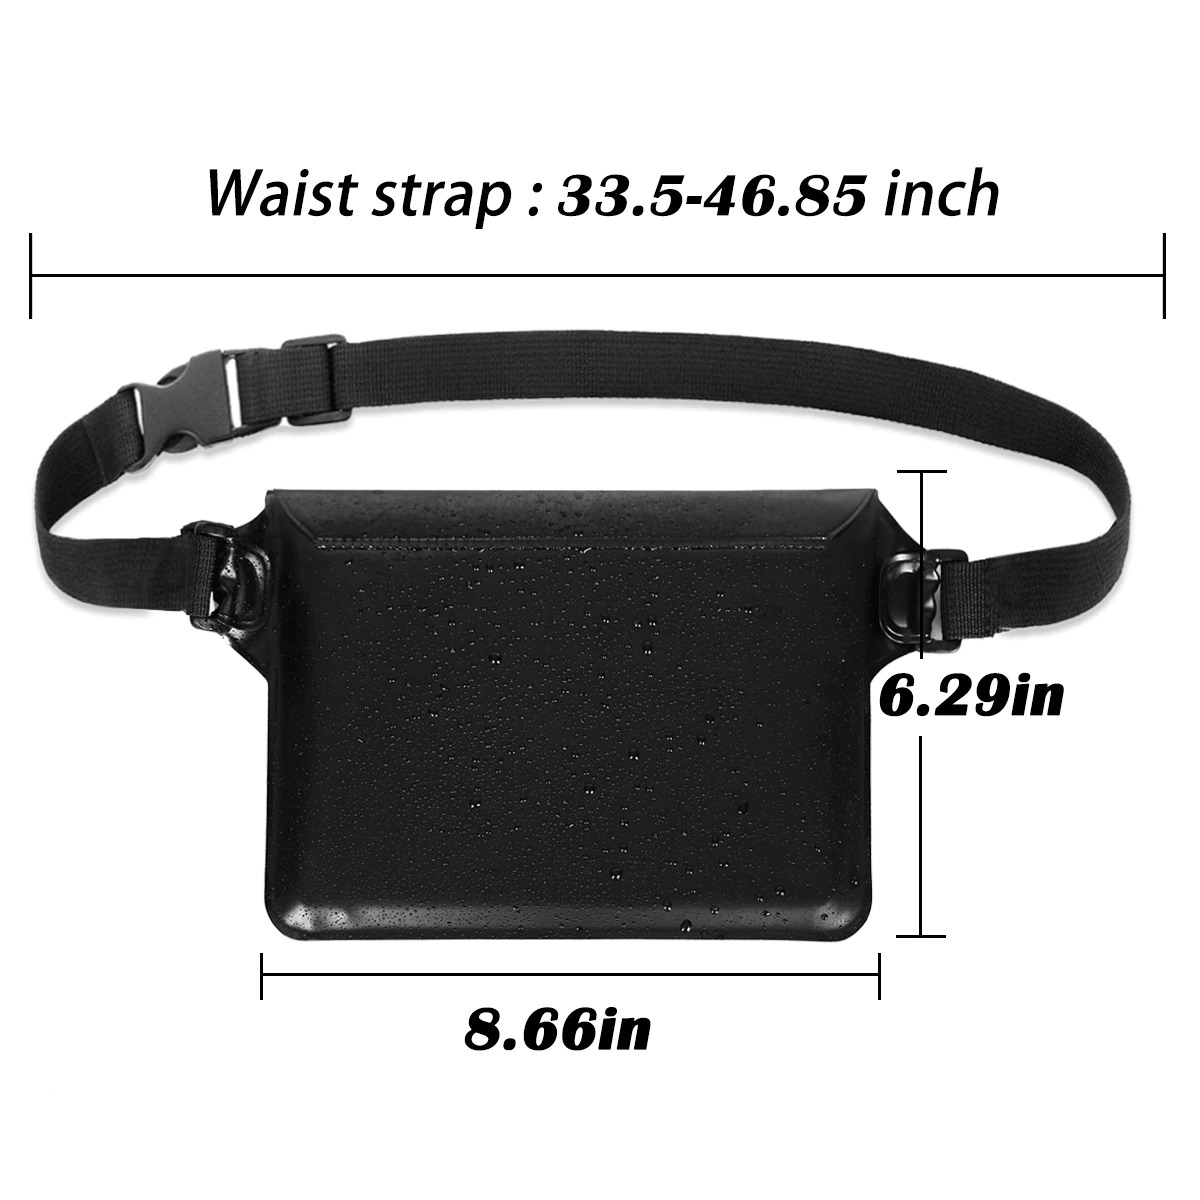 2-Pack Waterproof Pouch With Waist Strap (5)